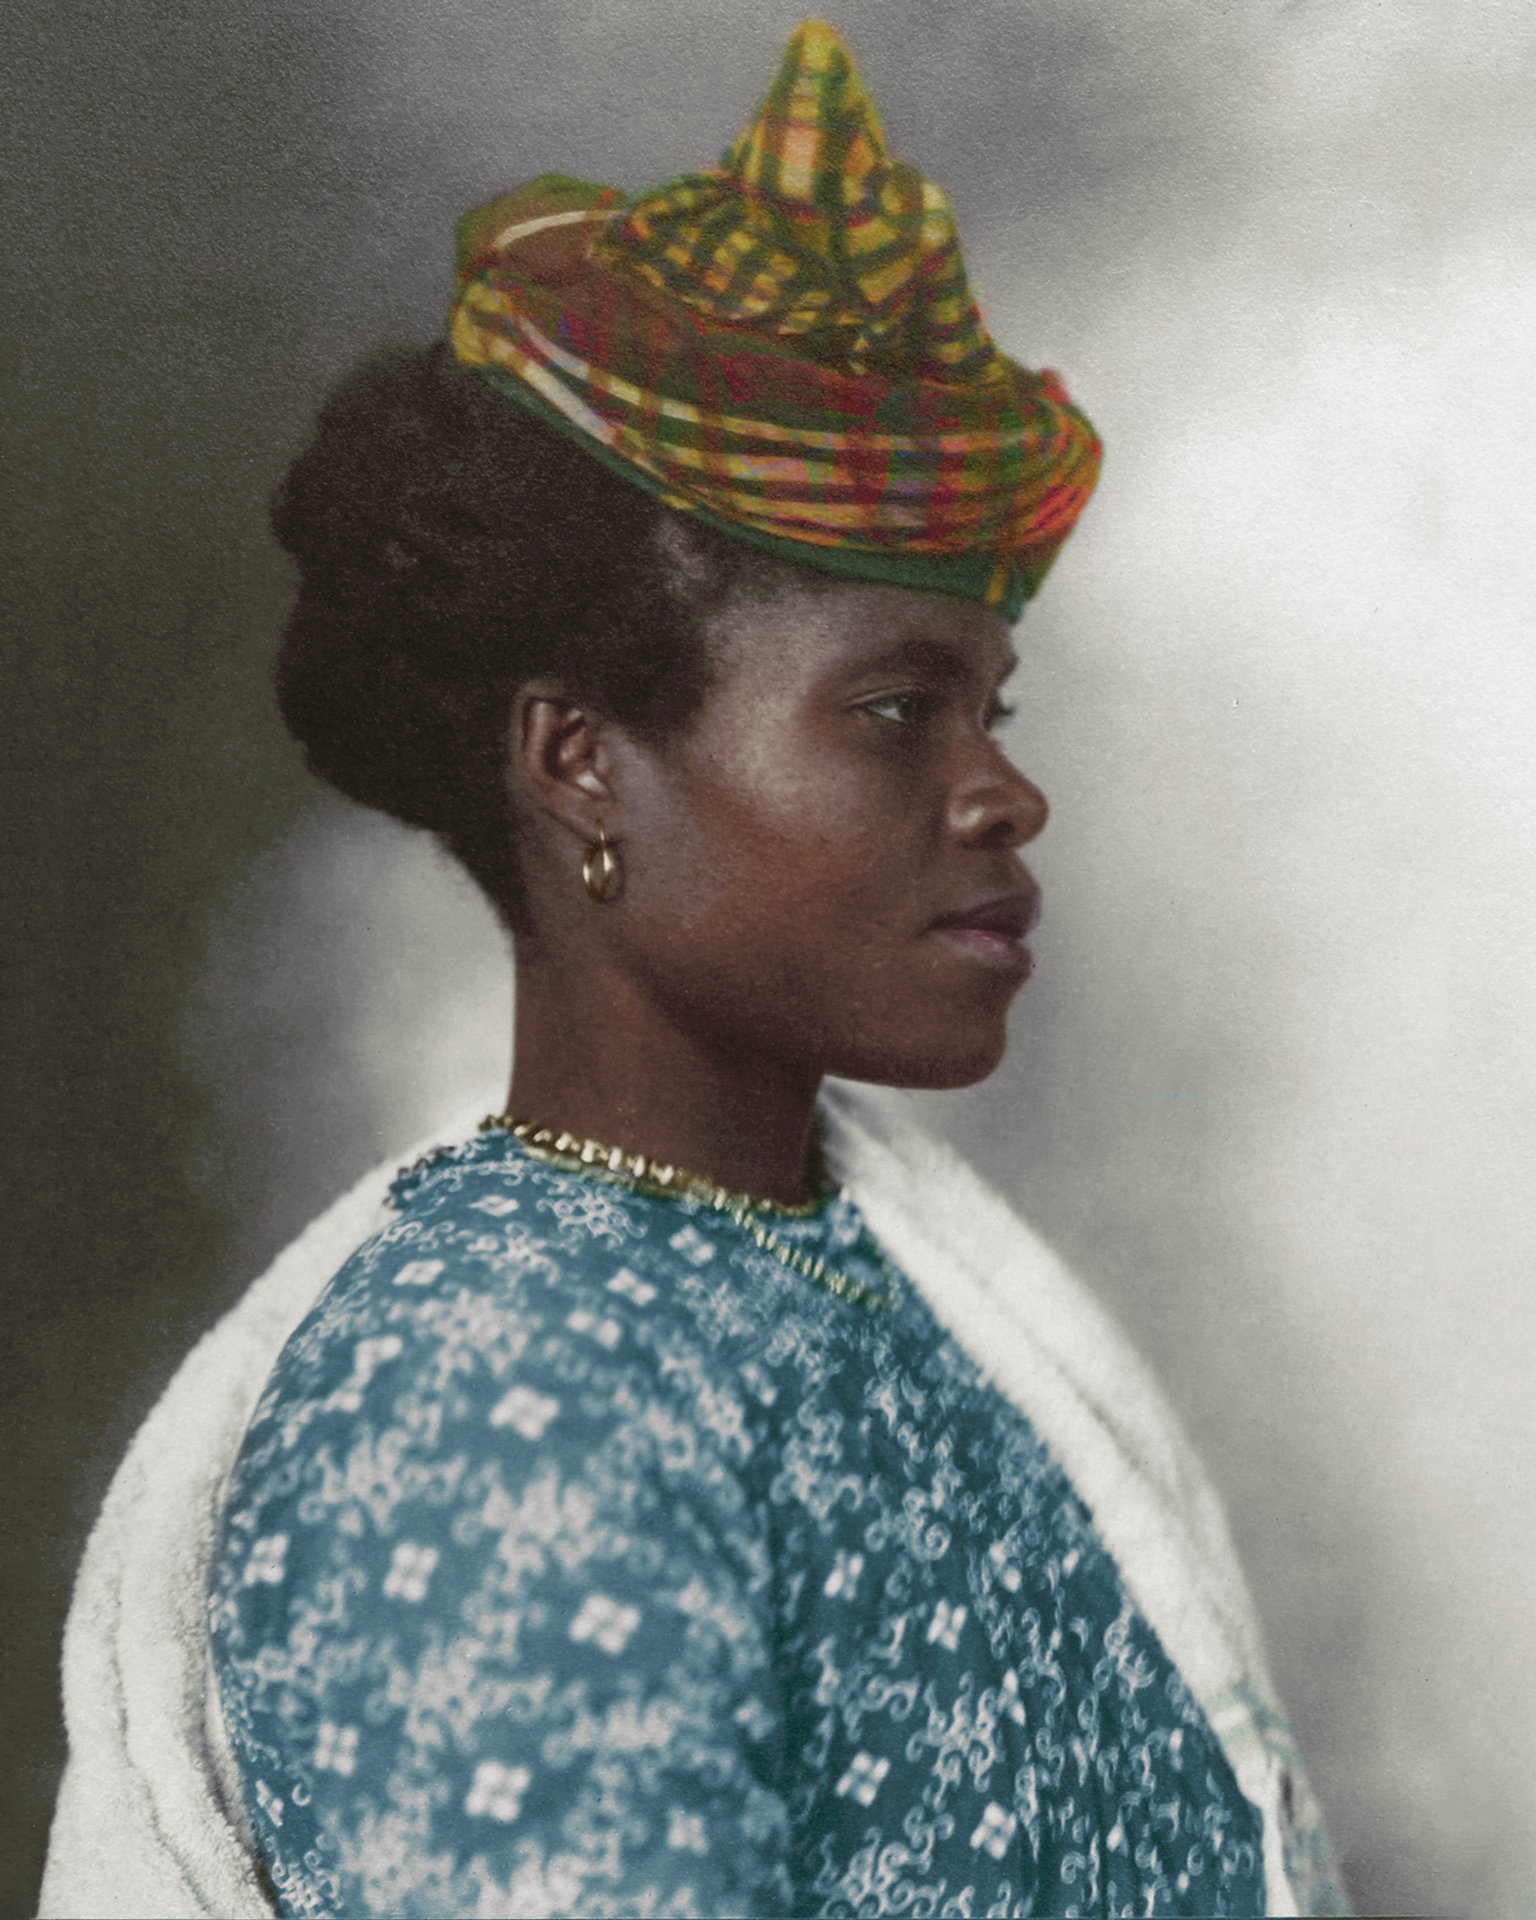 "1911 ""Guadeloupean Woman."" The elaborate tartan headpiece worn by Guadeloupean woman can be traced back to the middle ages where the eastern Indian city of Madras was famed for its cotton making. First plain, then striped and then with increasingly elaborate patterns, the Madras fabric that was exported and used as headwraps was eventually influenced by the Scottish in colonial India, leading to a Madras inspired tartan known as 'Madrasi checks', which in the colonial empires made its way to the French occupied Caribbean. Like many of the traditional costumes from all over the world, the headpiece decoration in many cases was indicative of the married status of the wearer."